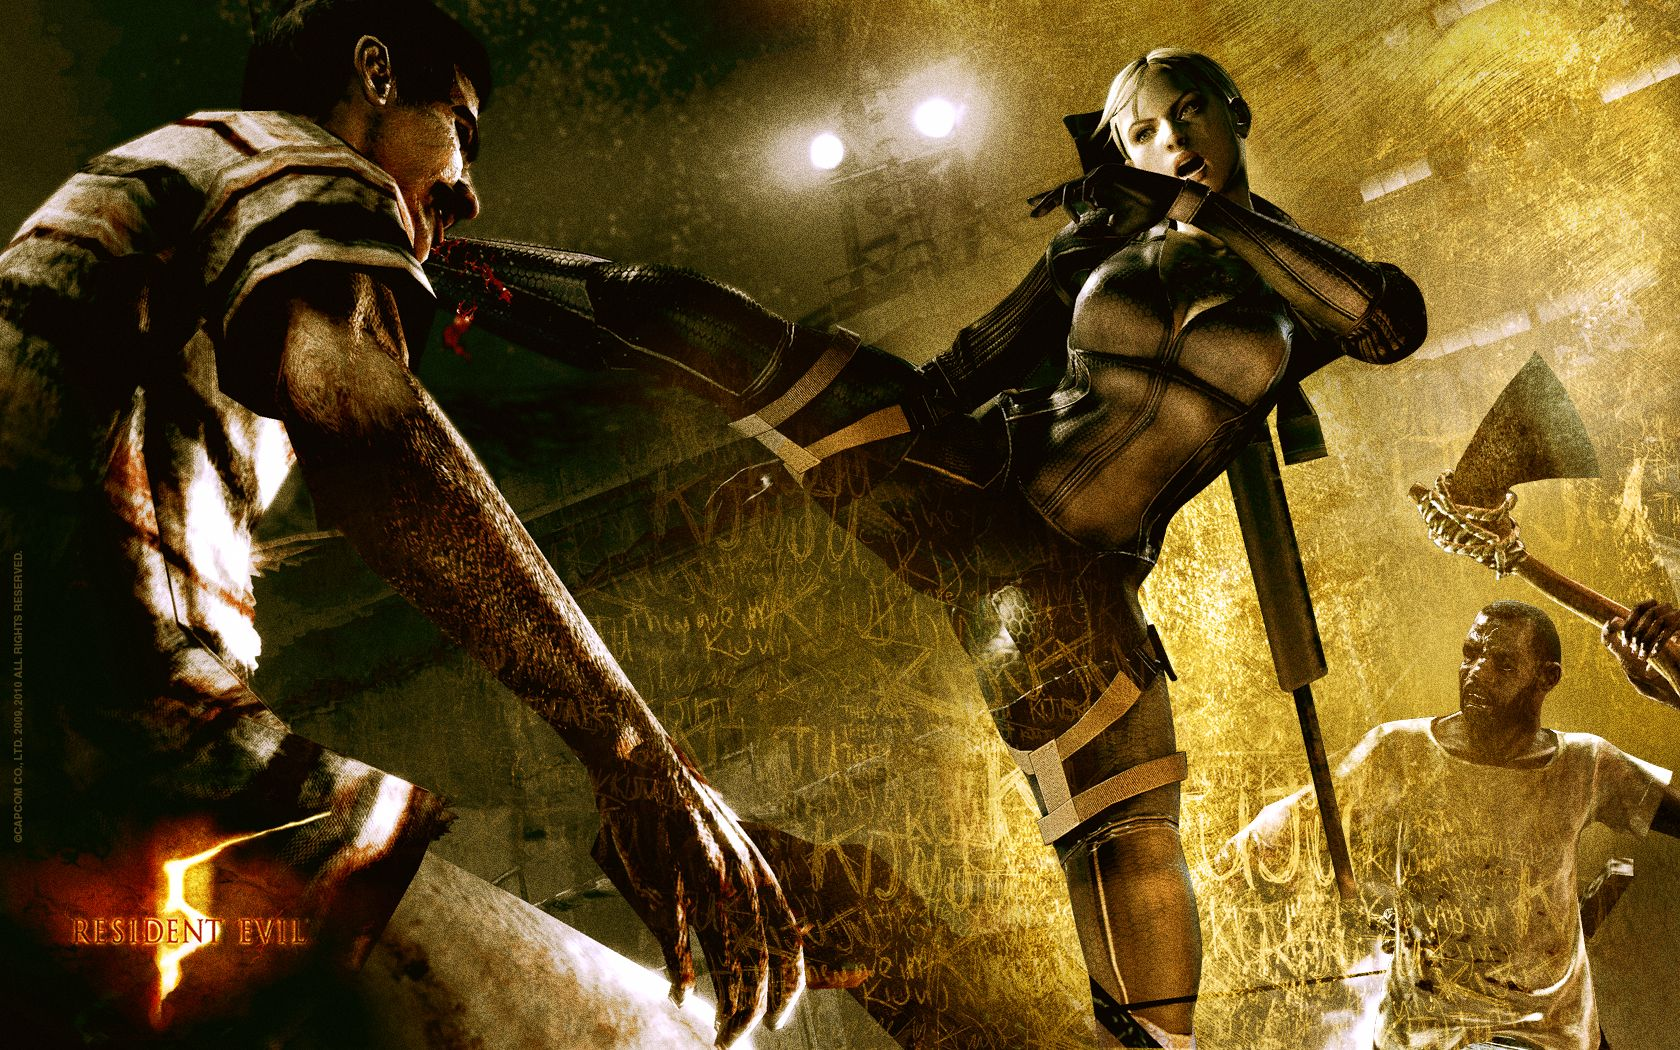 resident evil 5 gold edition wallpaper